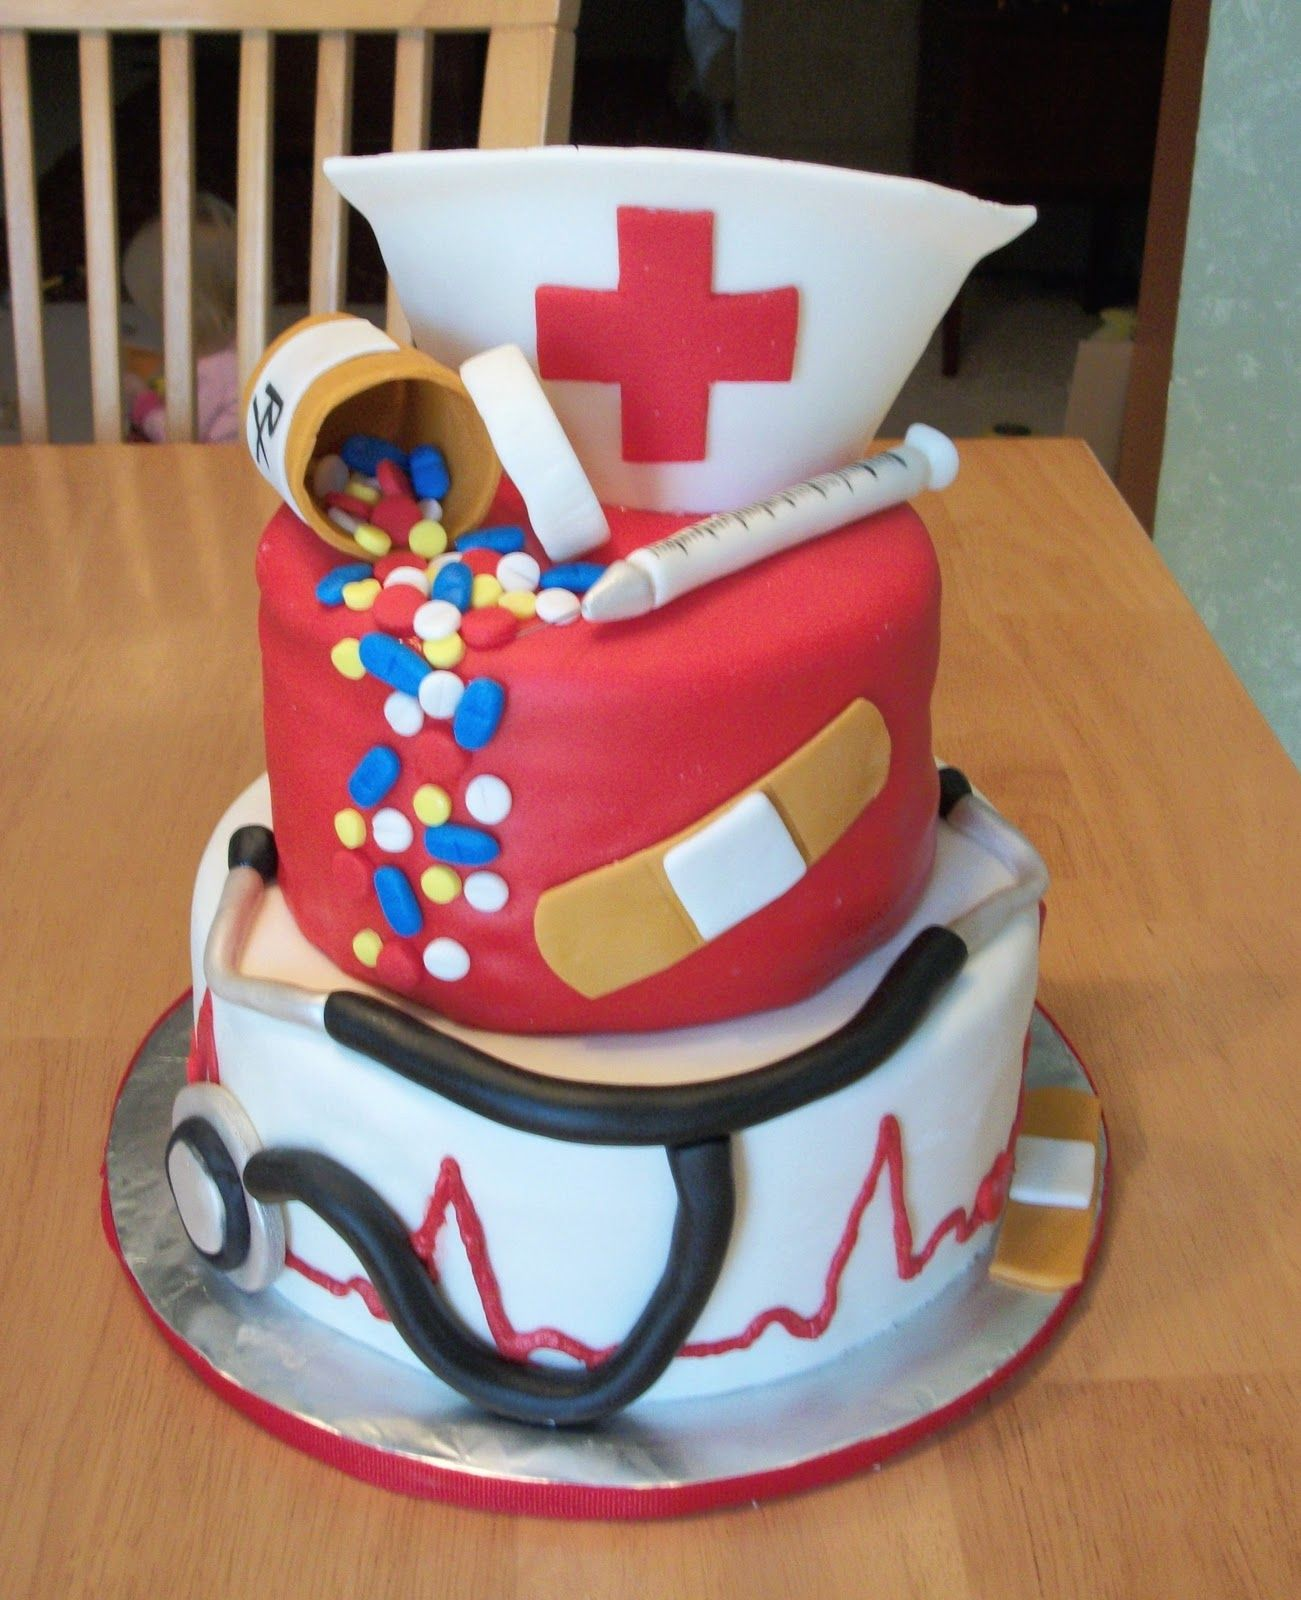 Bellissimo Specialty Cakes Nurse Cake 1010 cool ideas